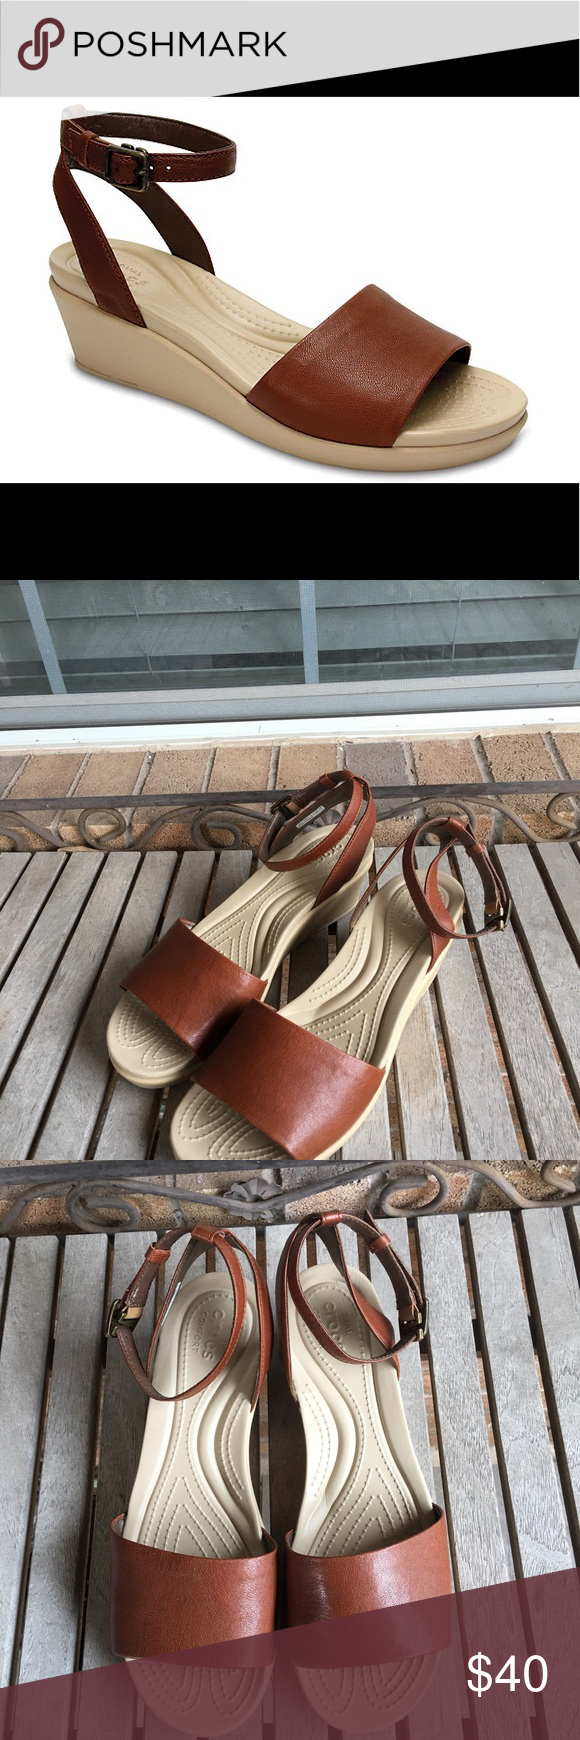 9d6a21f27ab2 Crocs Leigh-Ann Ankle Strap Leather Wedge Sandal NWOT! All of the best  attributes